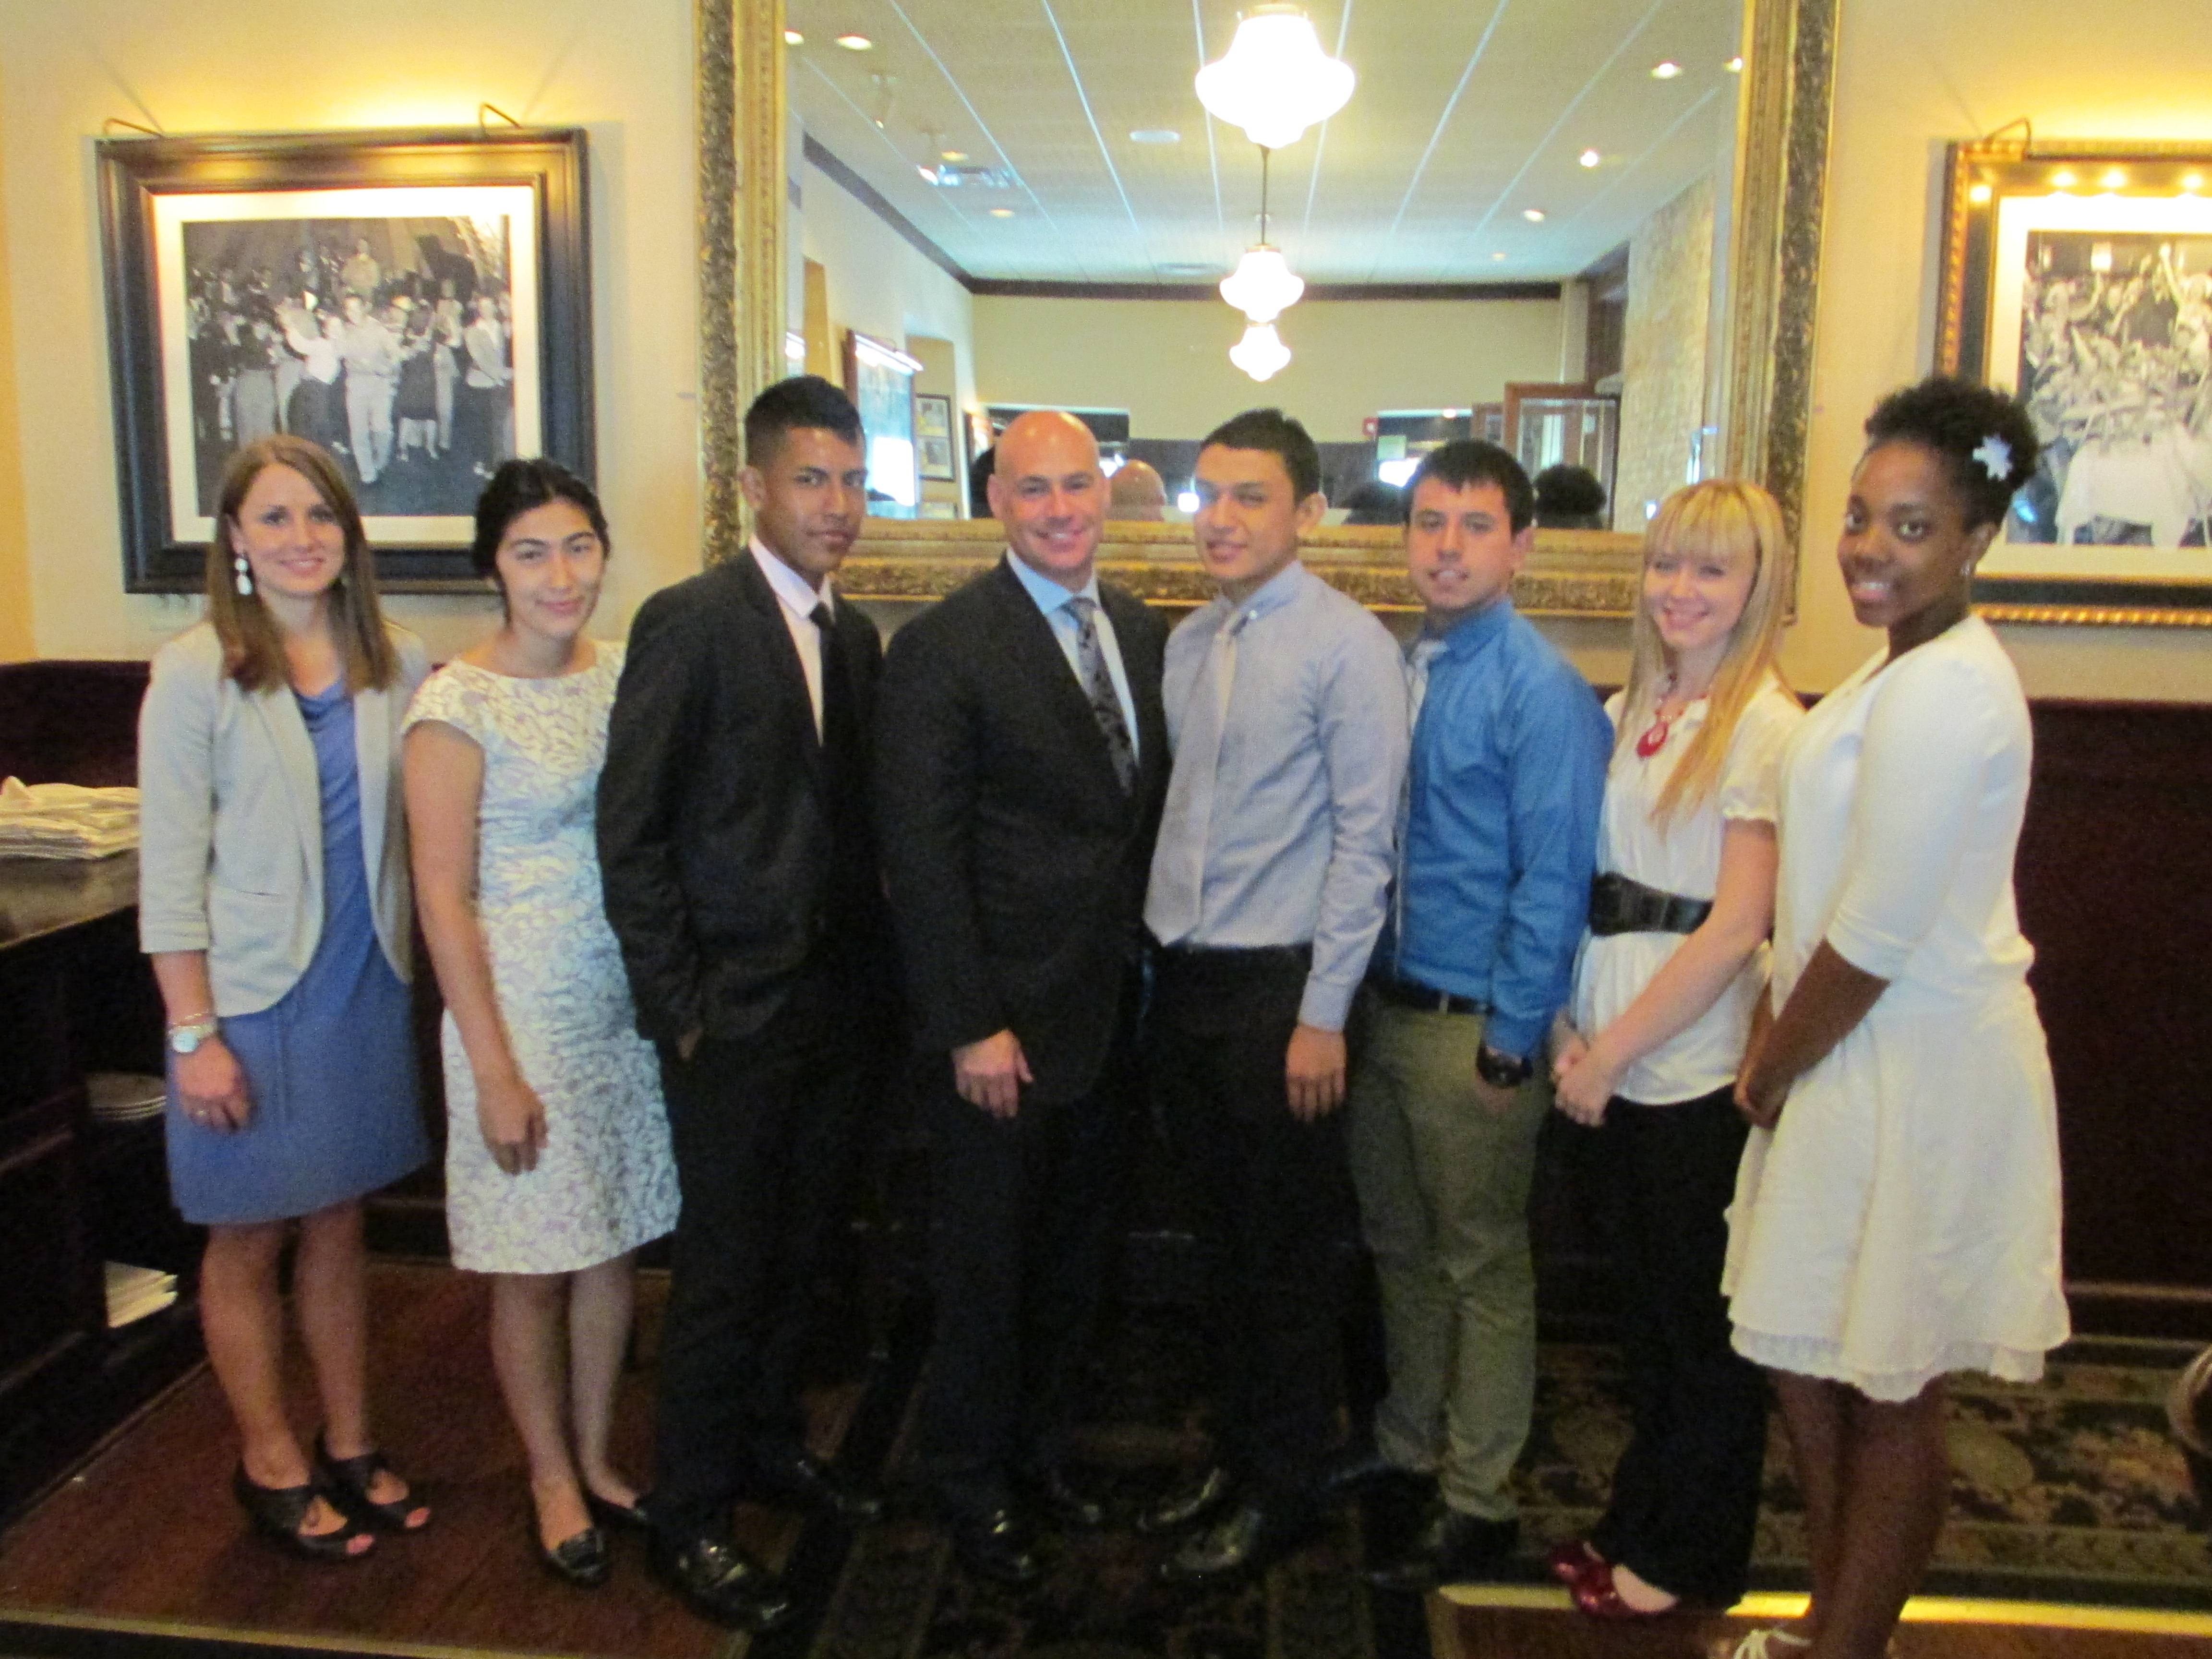 Group of scolarship awardees with Charles Serlin and Leslie VanderMeulen, Car Outlet at recognition luncheon on August 15, 2013